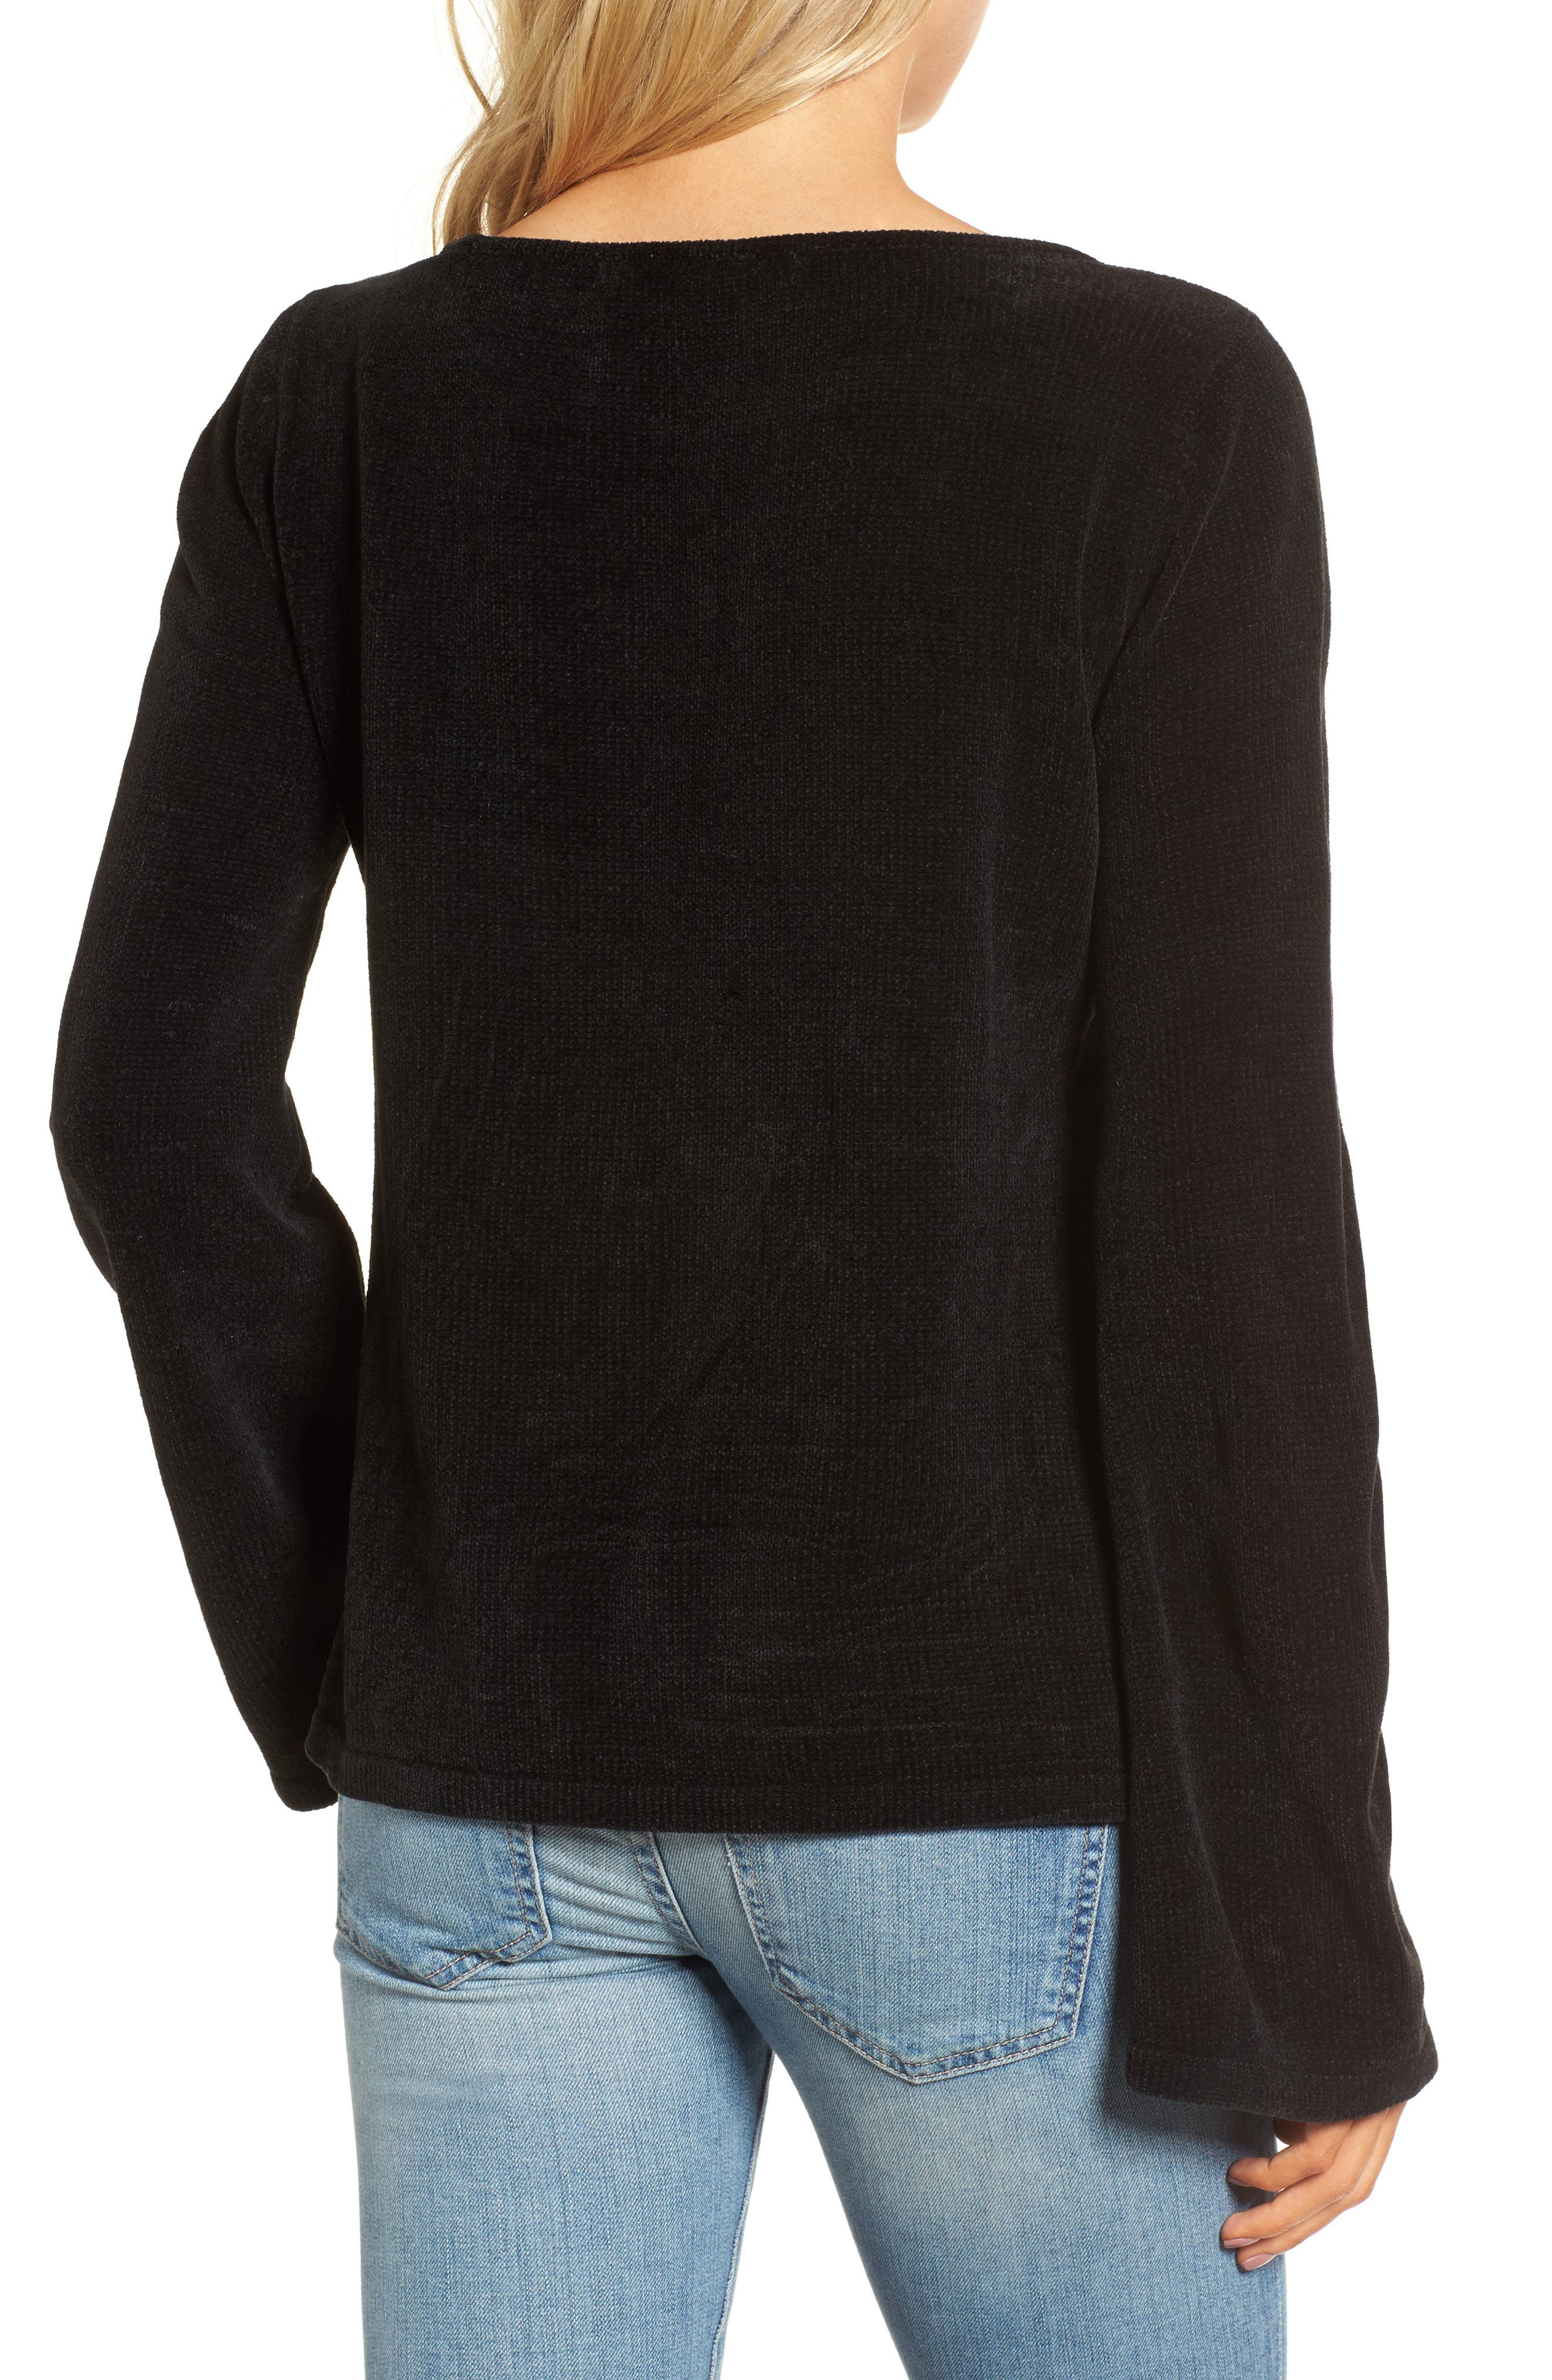 Ruthie Embroidered Sweater,                             Alternate thumbnail 2, color,                             Black